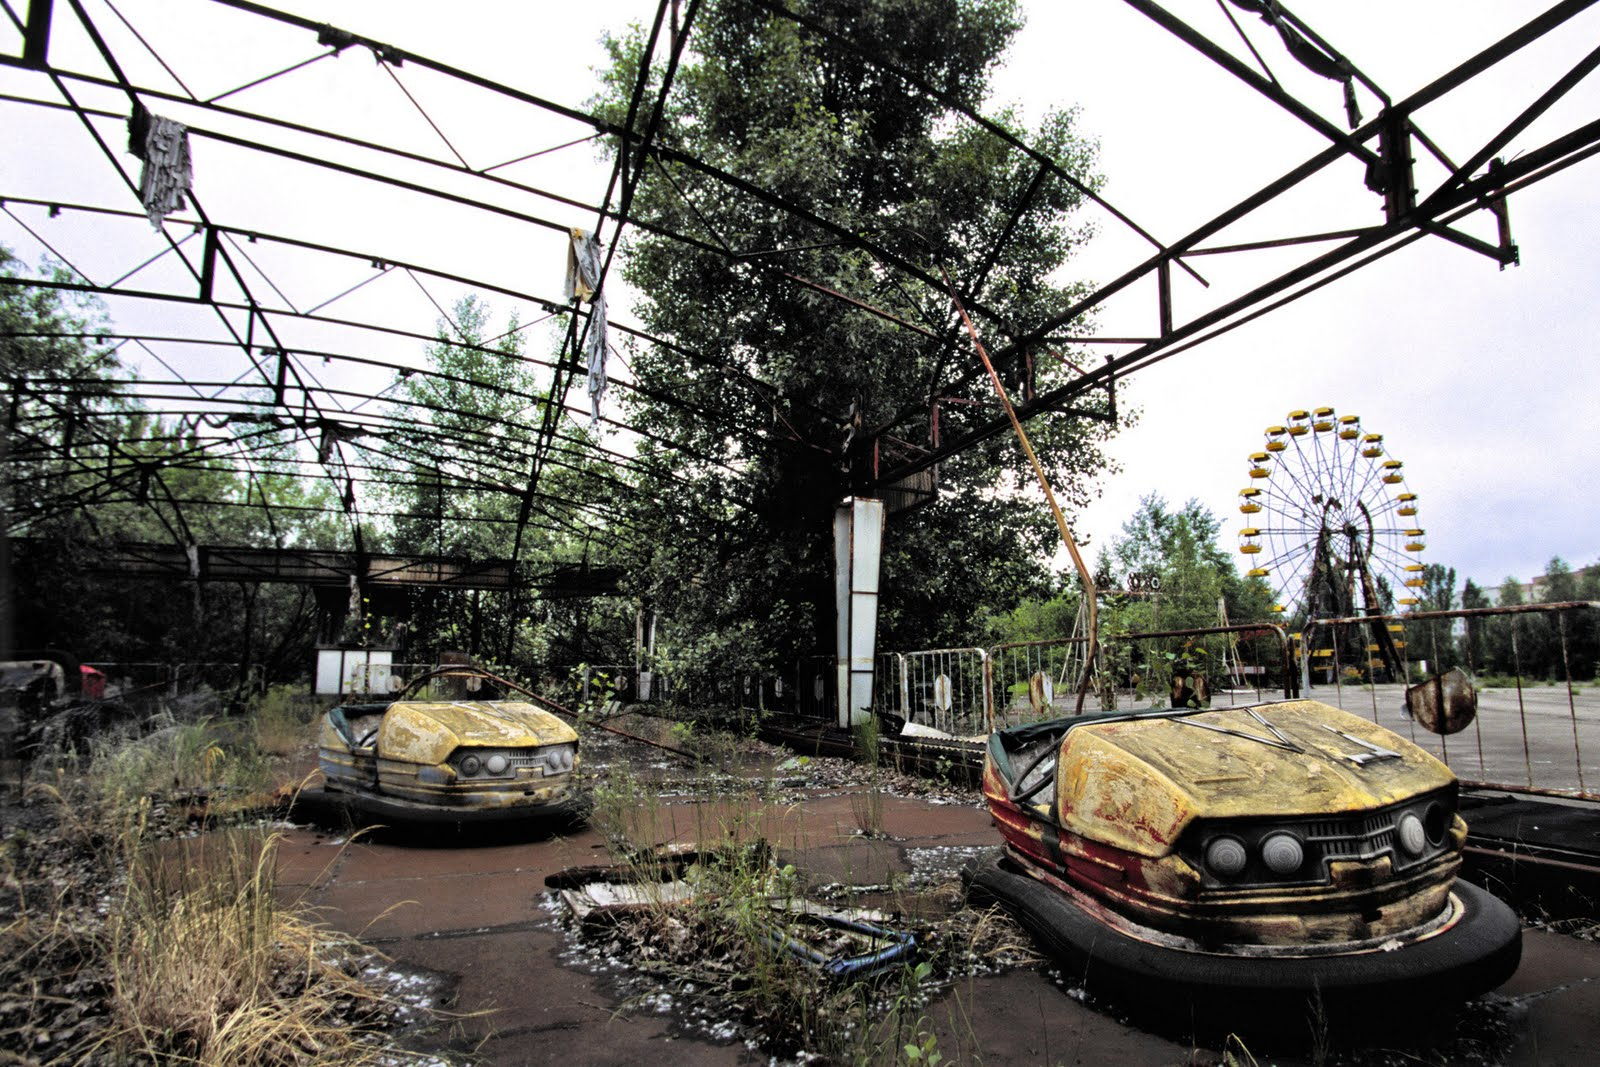 chernobyl accident Moscow — the chernobyl plant sits idle 20 years after the world's worst  nuclear accident, its last reactor taken out of service some six years.